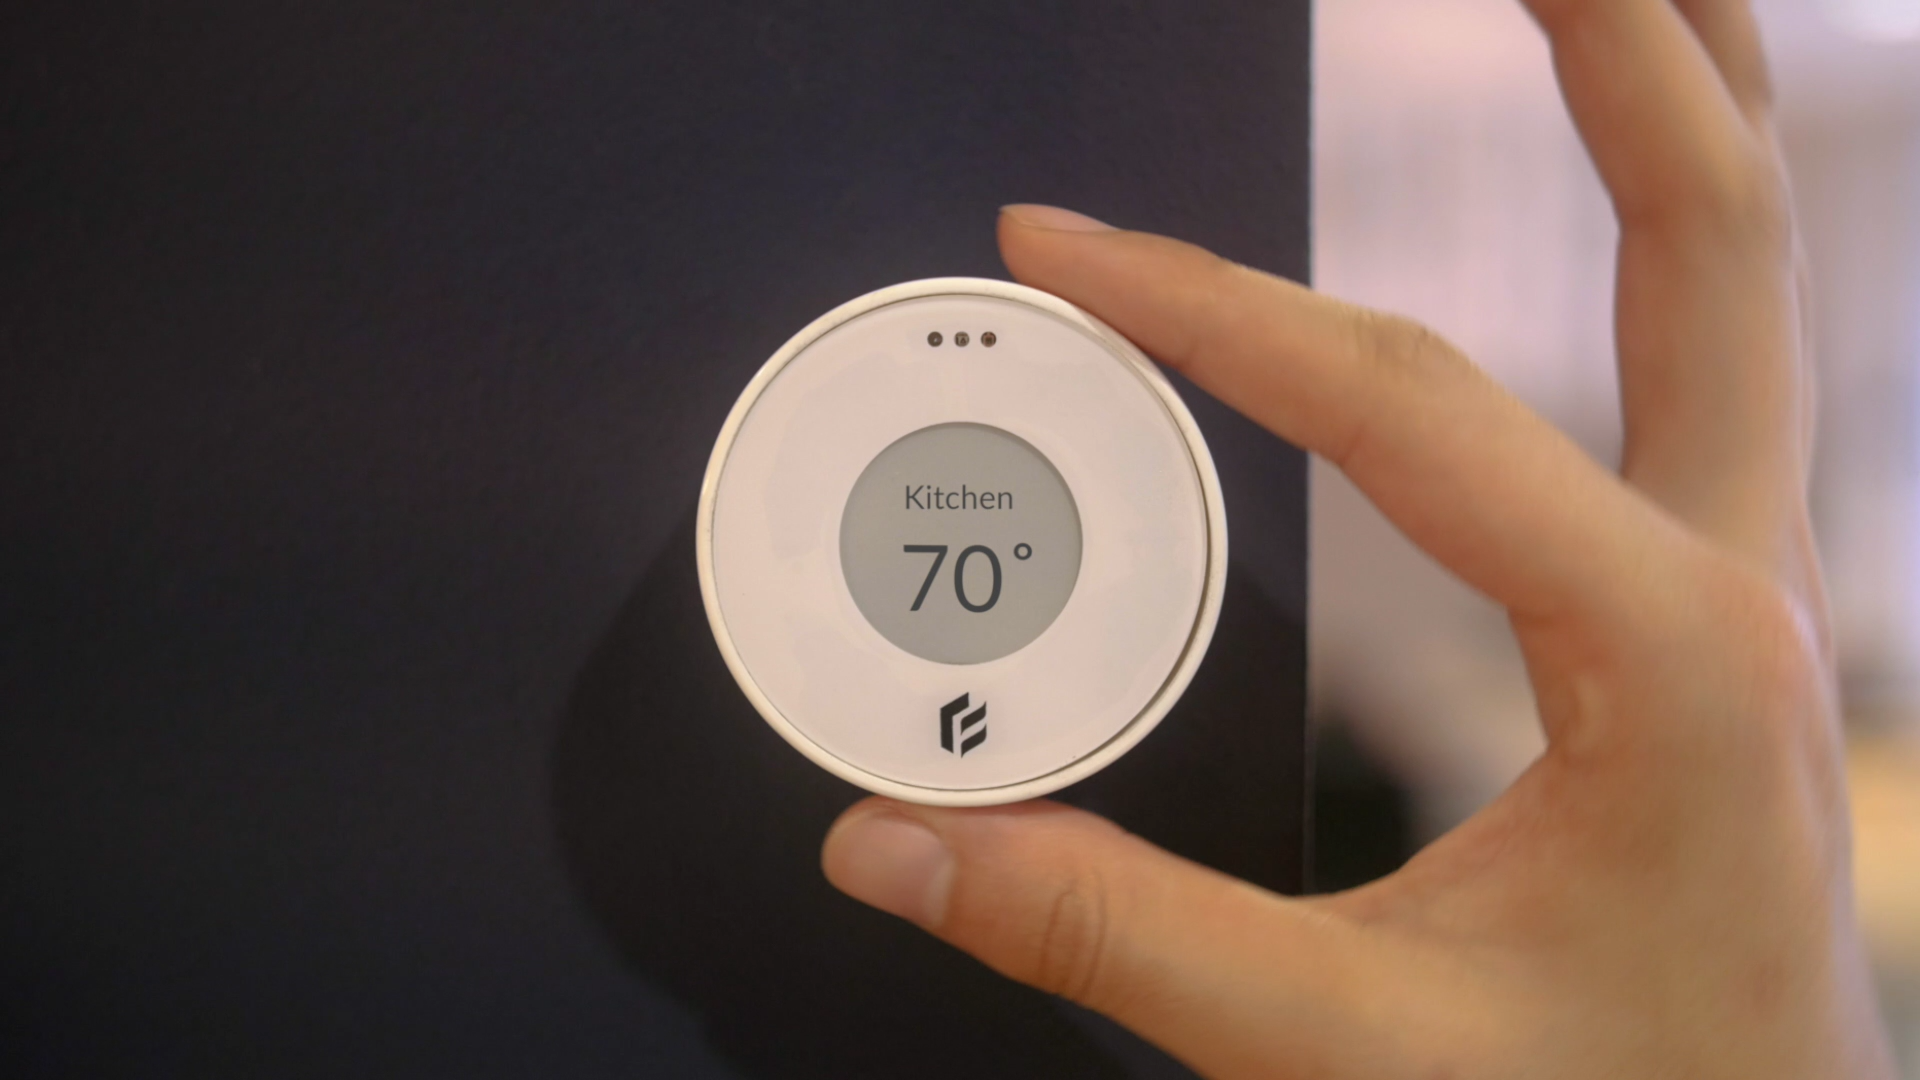 Pin By Joe S On Smart Home Wireless Thermostat Thermostat Smart Thermostats